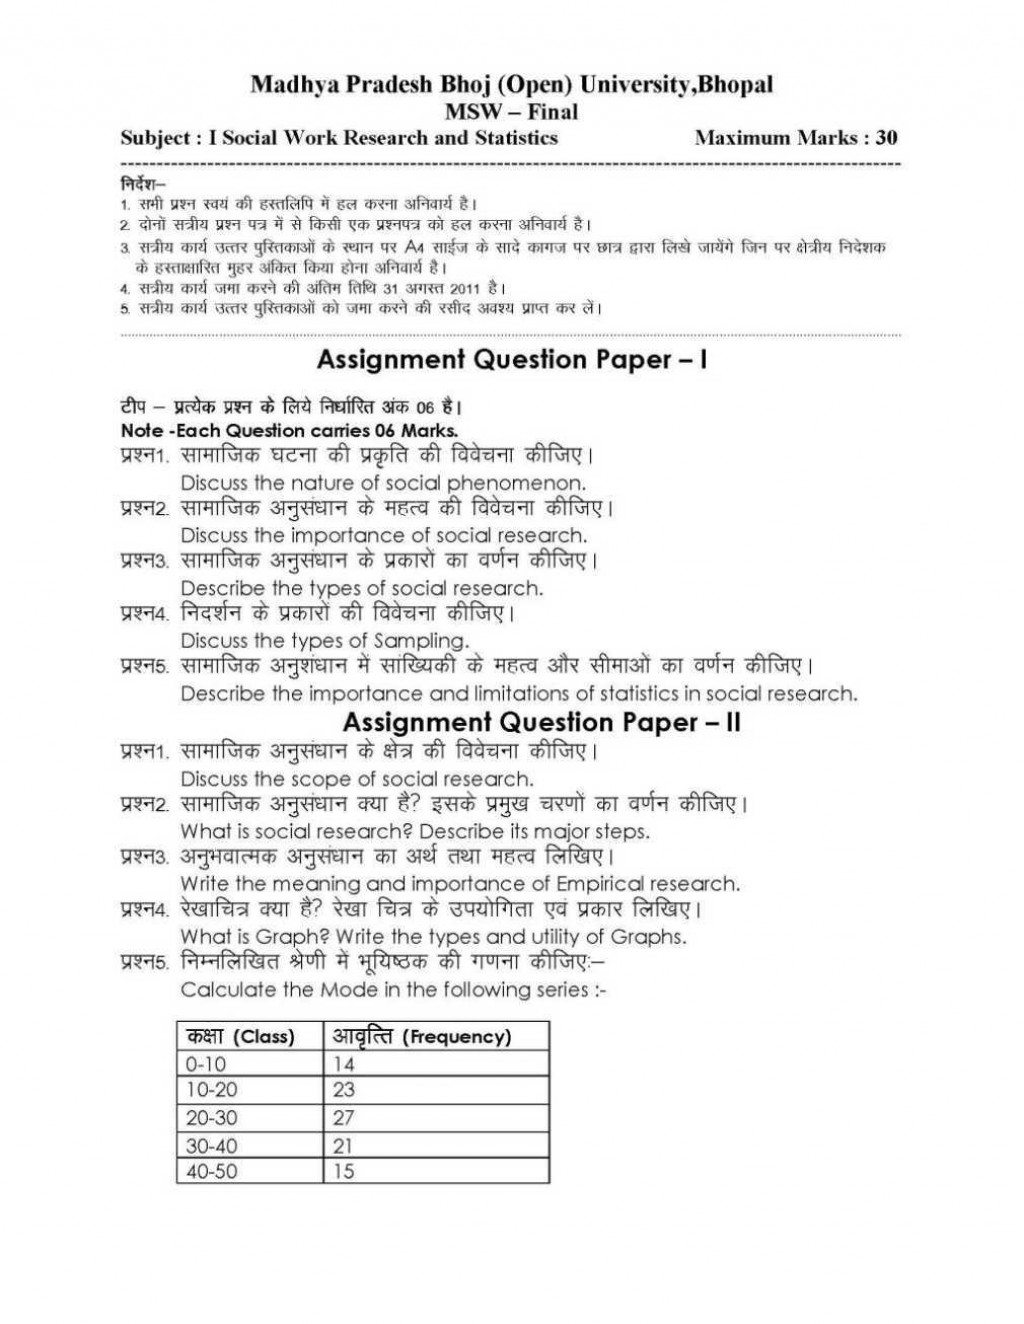 012 Hiv Essay Example Open University Essays Safety Paper Okl Mindsprout Bhoj Bhopal Group Work Phenomenal Aids Conclusion Pdf Hiv/aids Topics Large